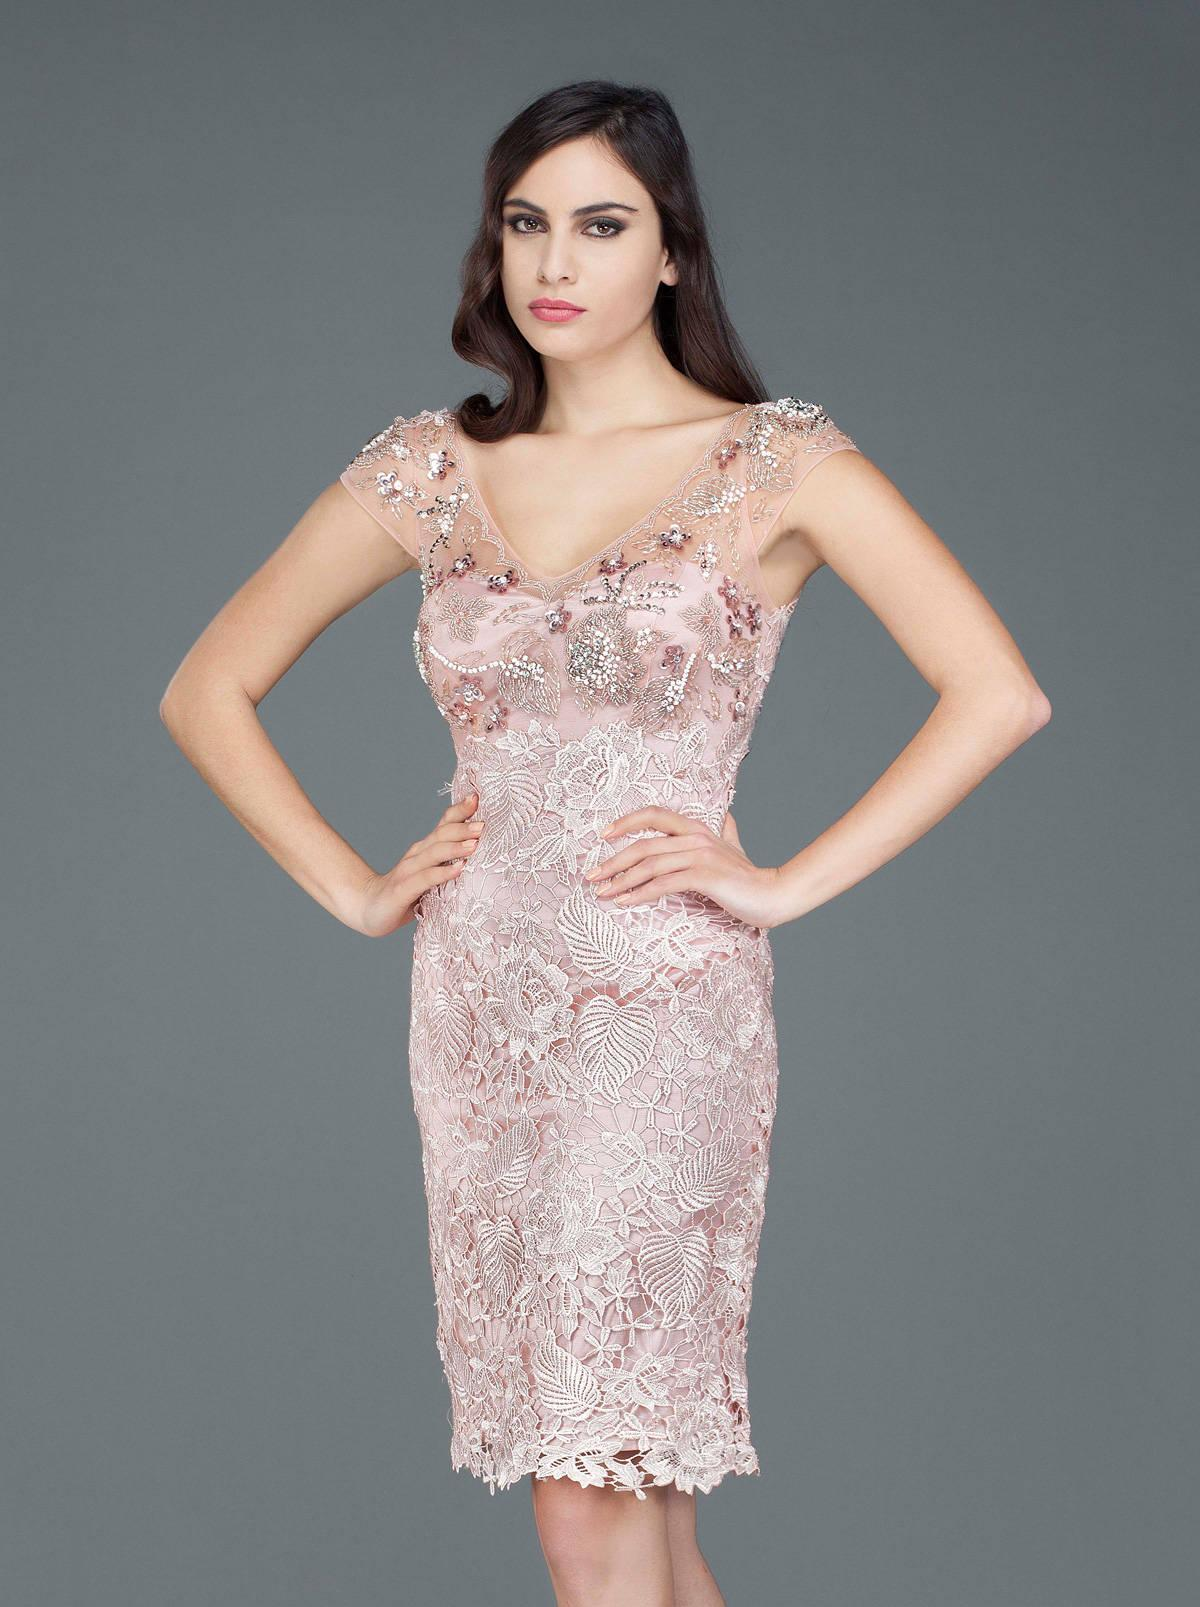 Evening Dresses In Dallas Texas - Long Dresses Online